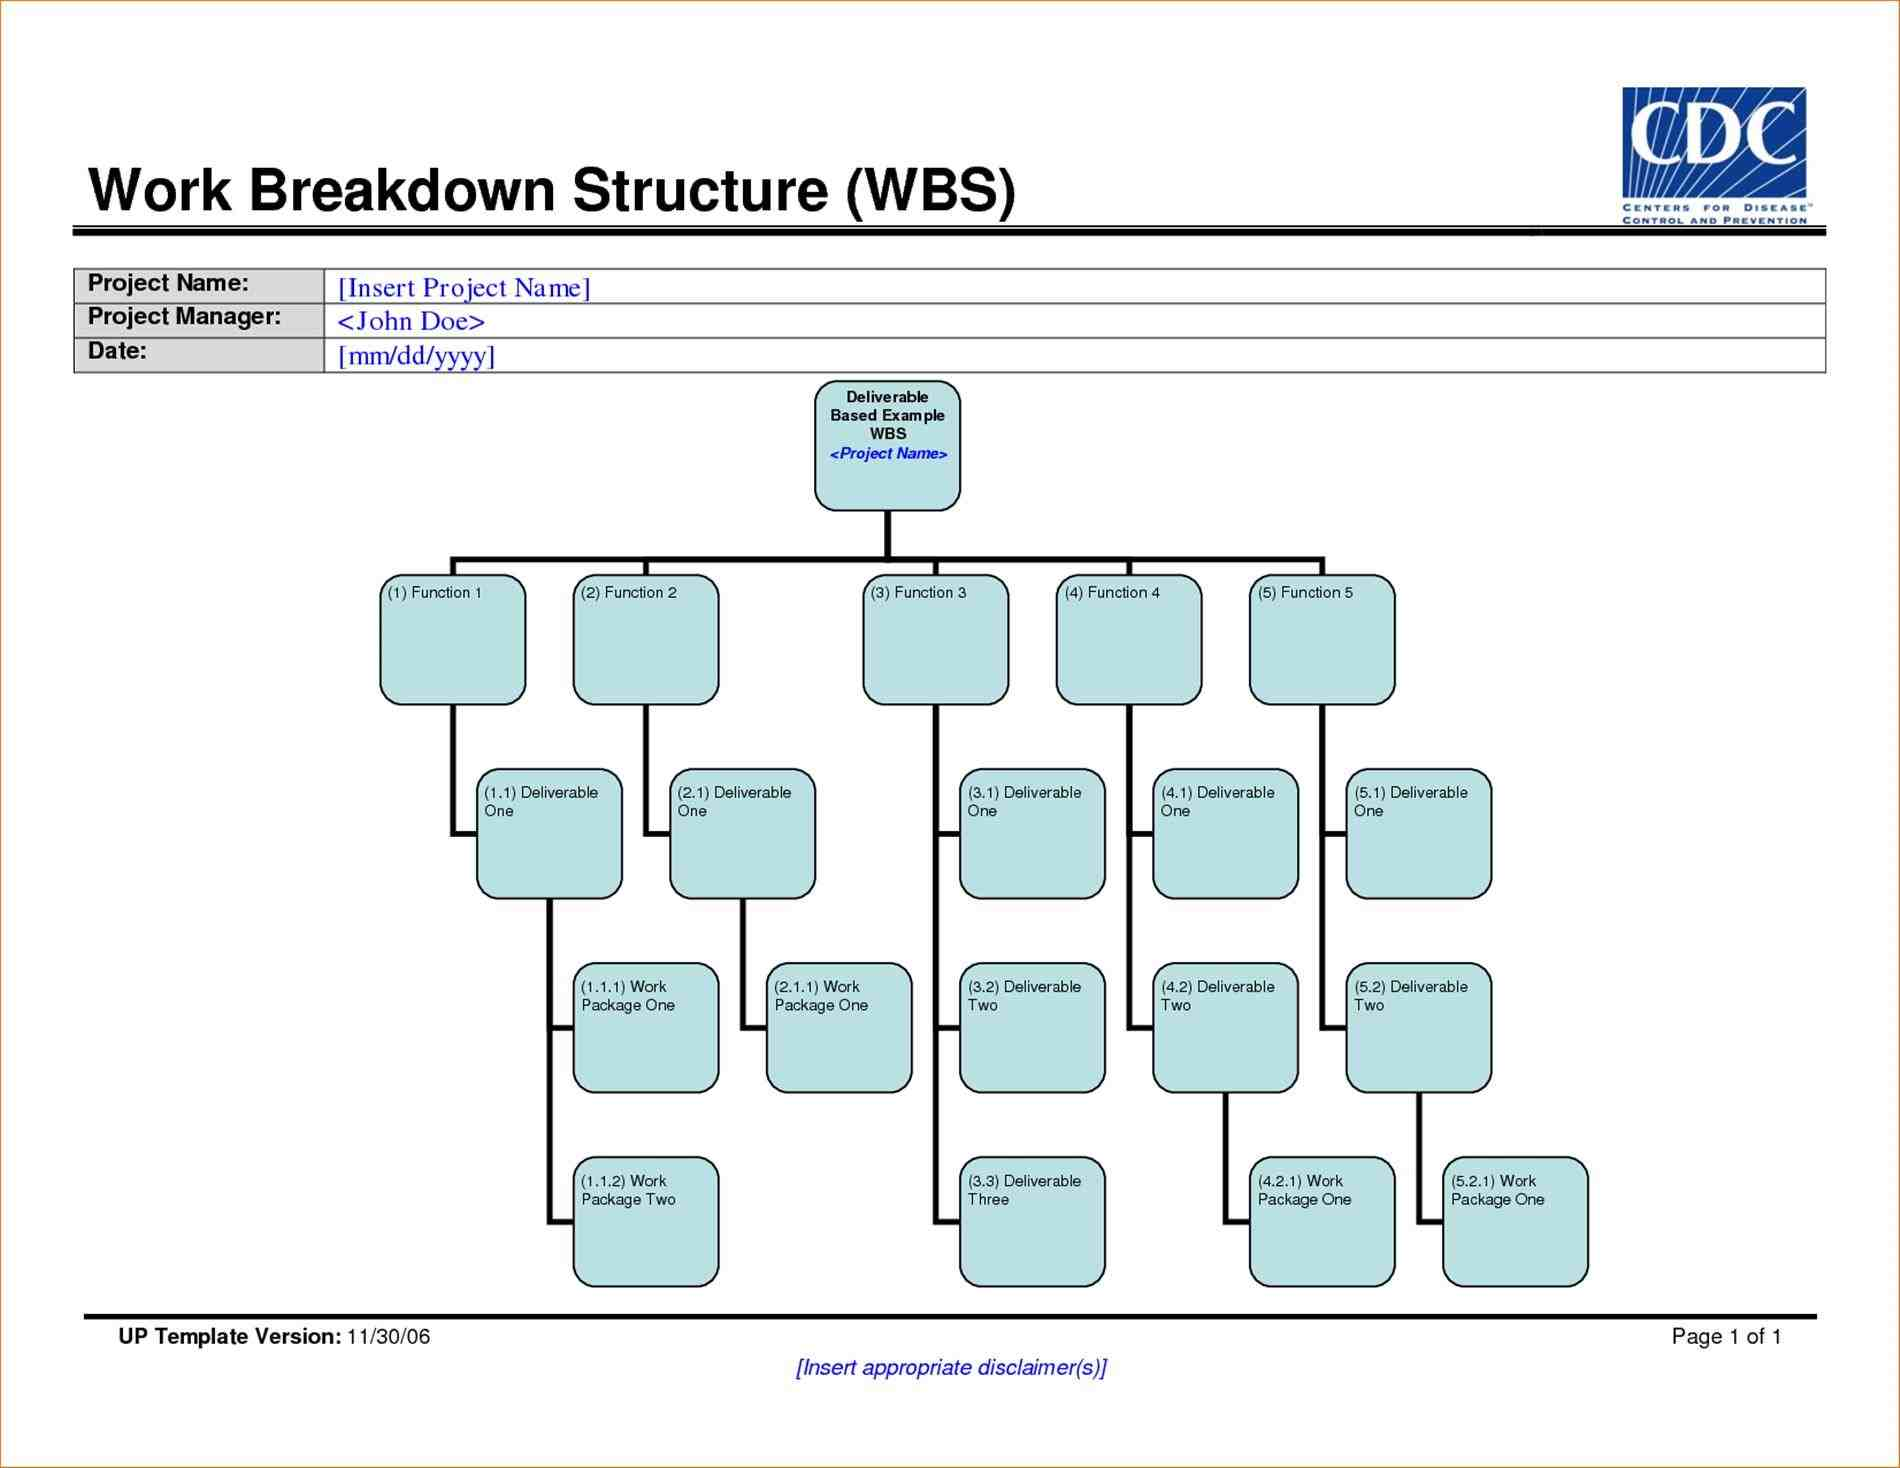 see elegant freeruncom work Work Breakdown Structure Template breakdown structure template freeruncom unique best templates unique Work Breakdown Structure Template